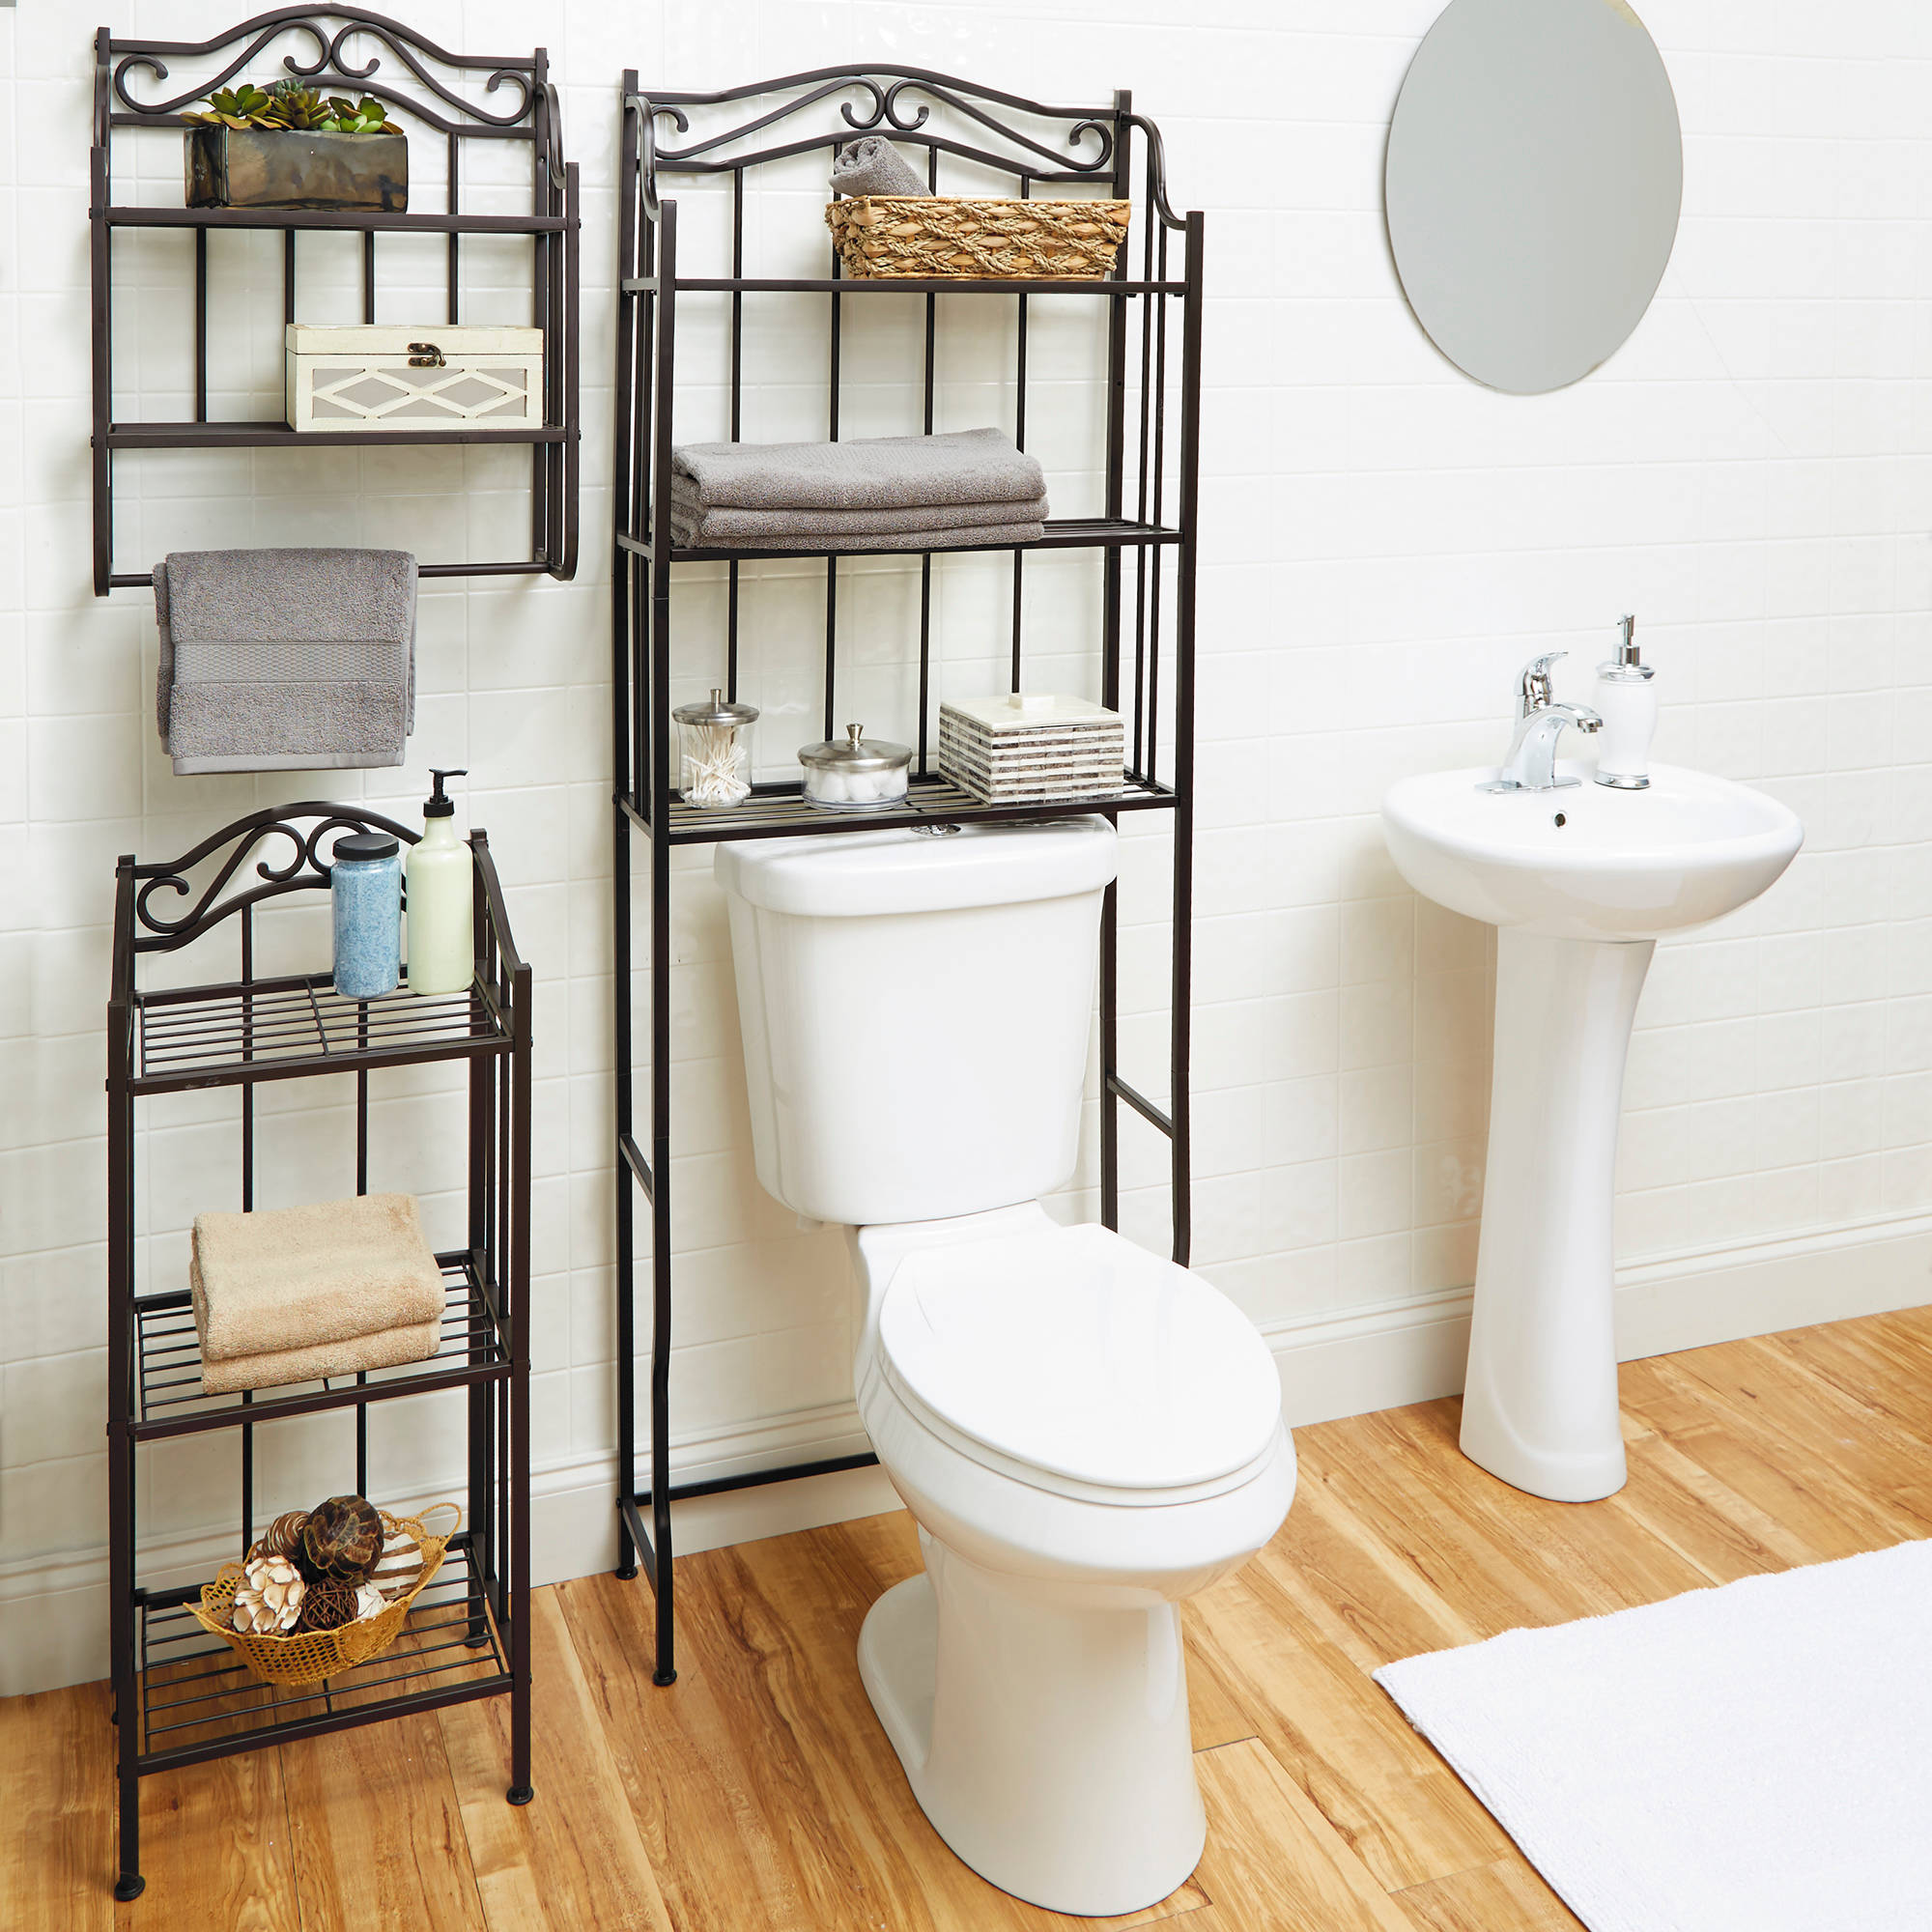 of the bathroom over most savers one cabinet above common saver pin toilet space